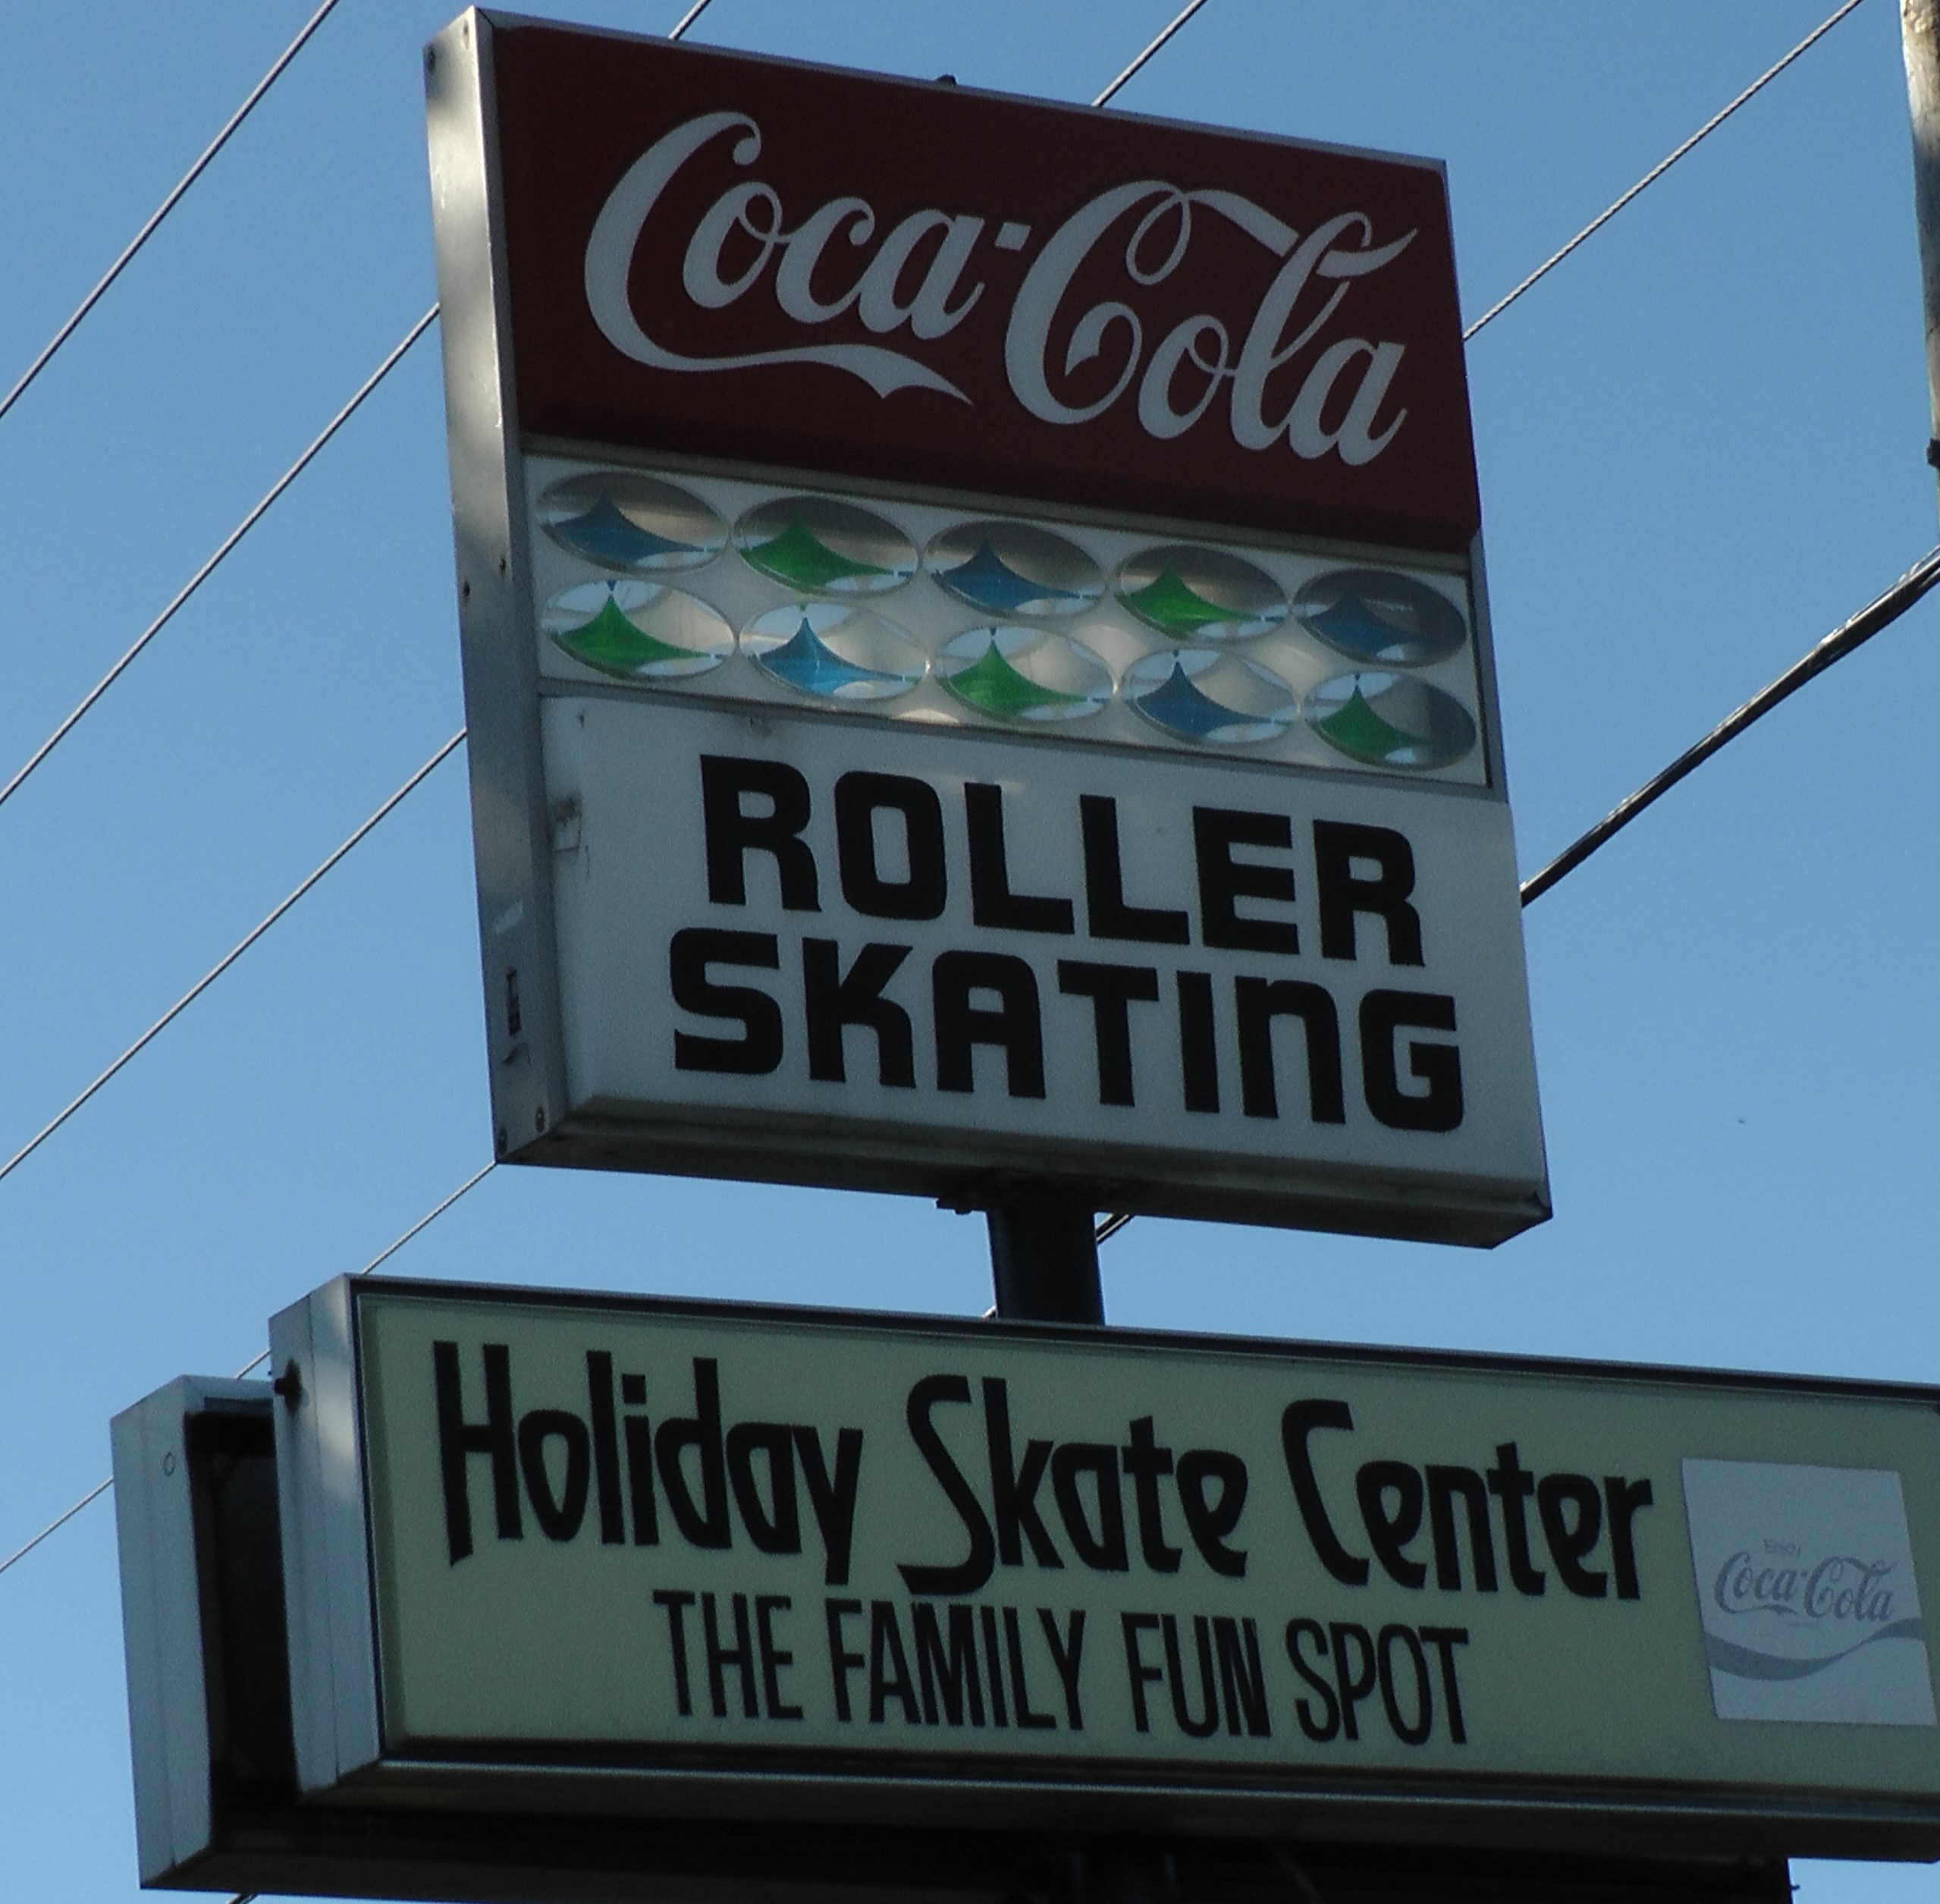 Indiana elkhart county bristol - Try Roller Skating In Elkhart County